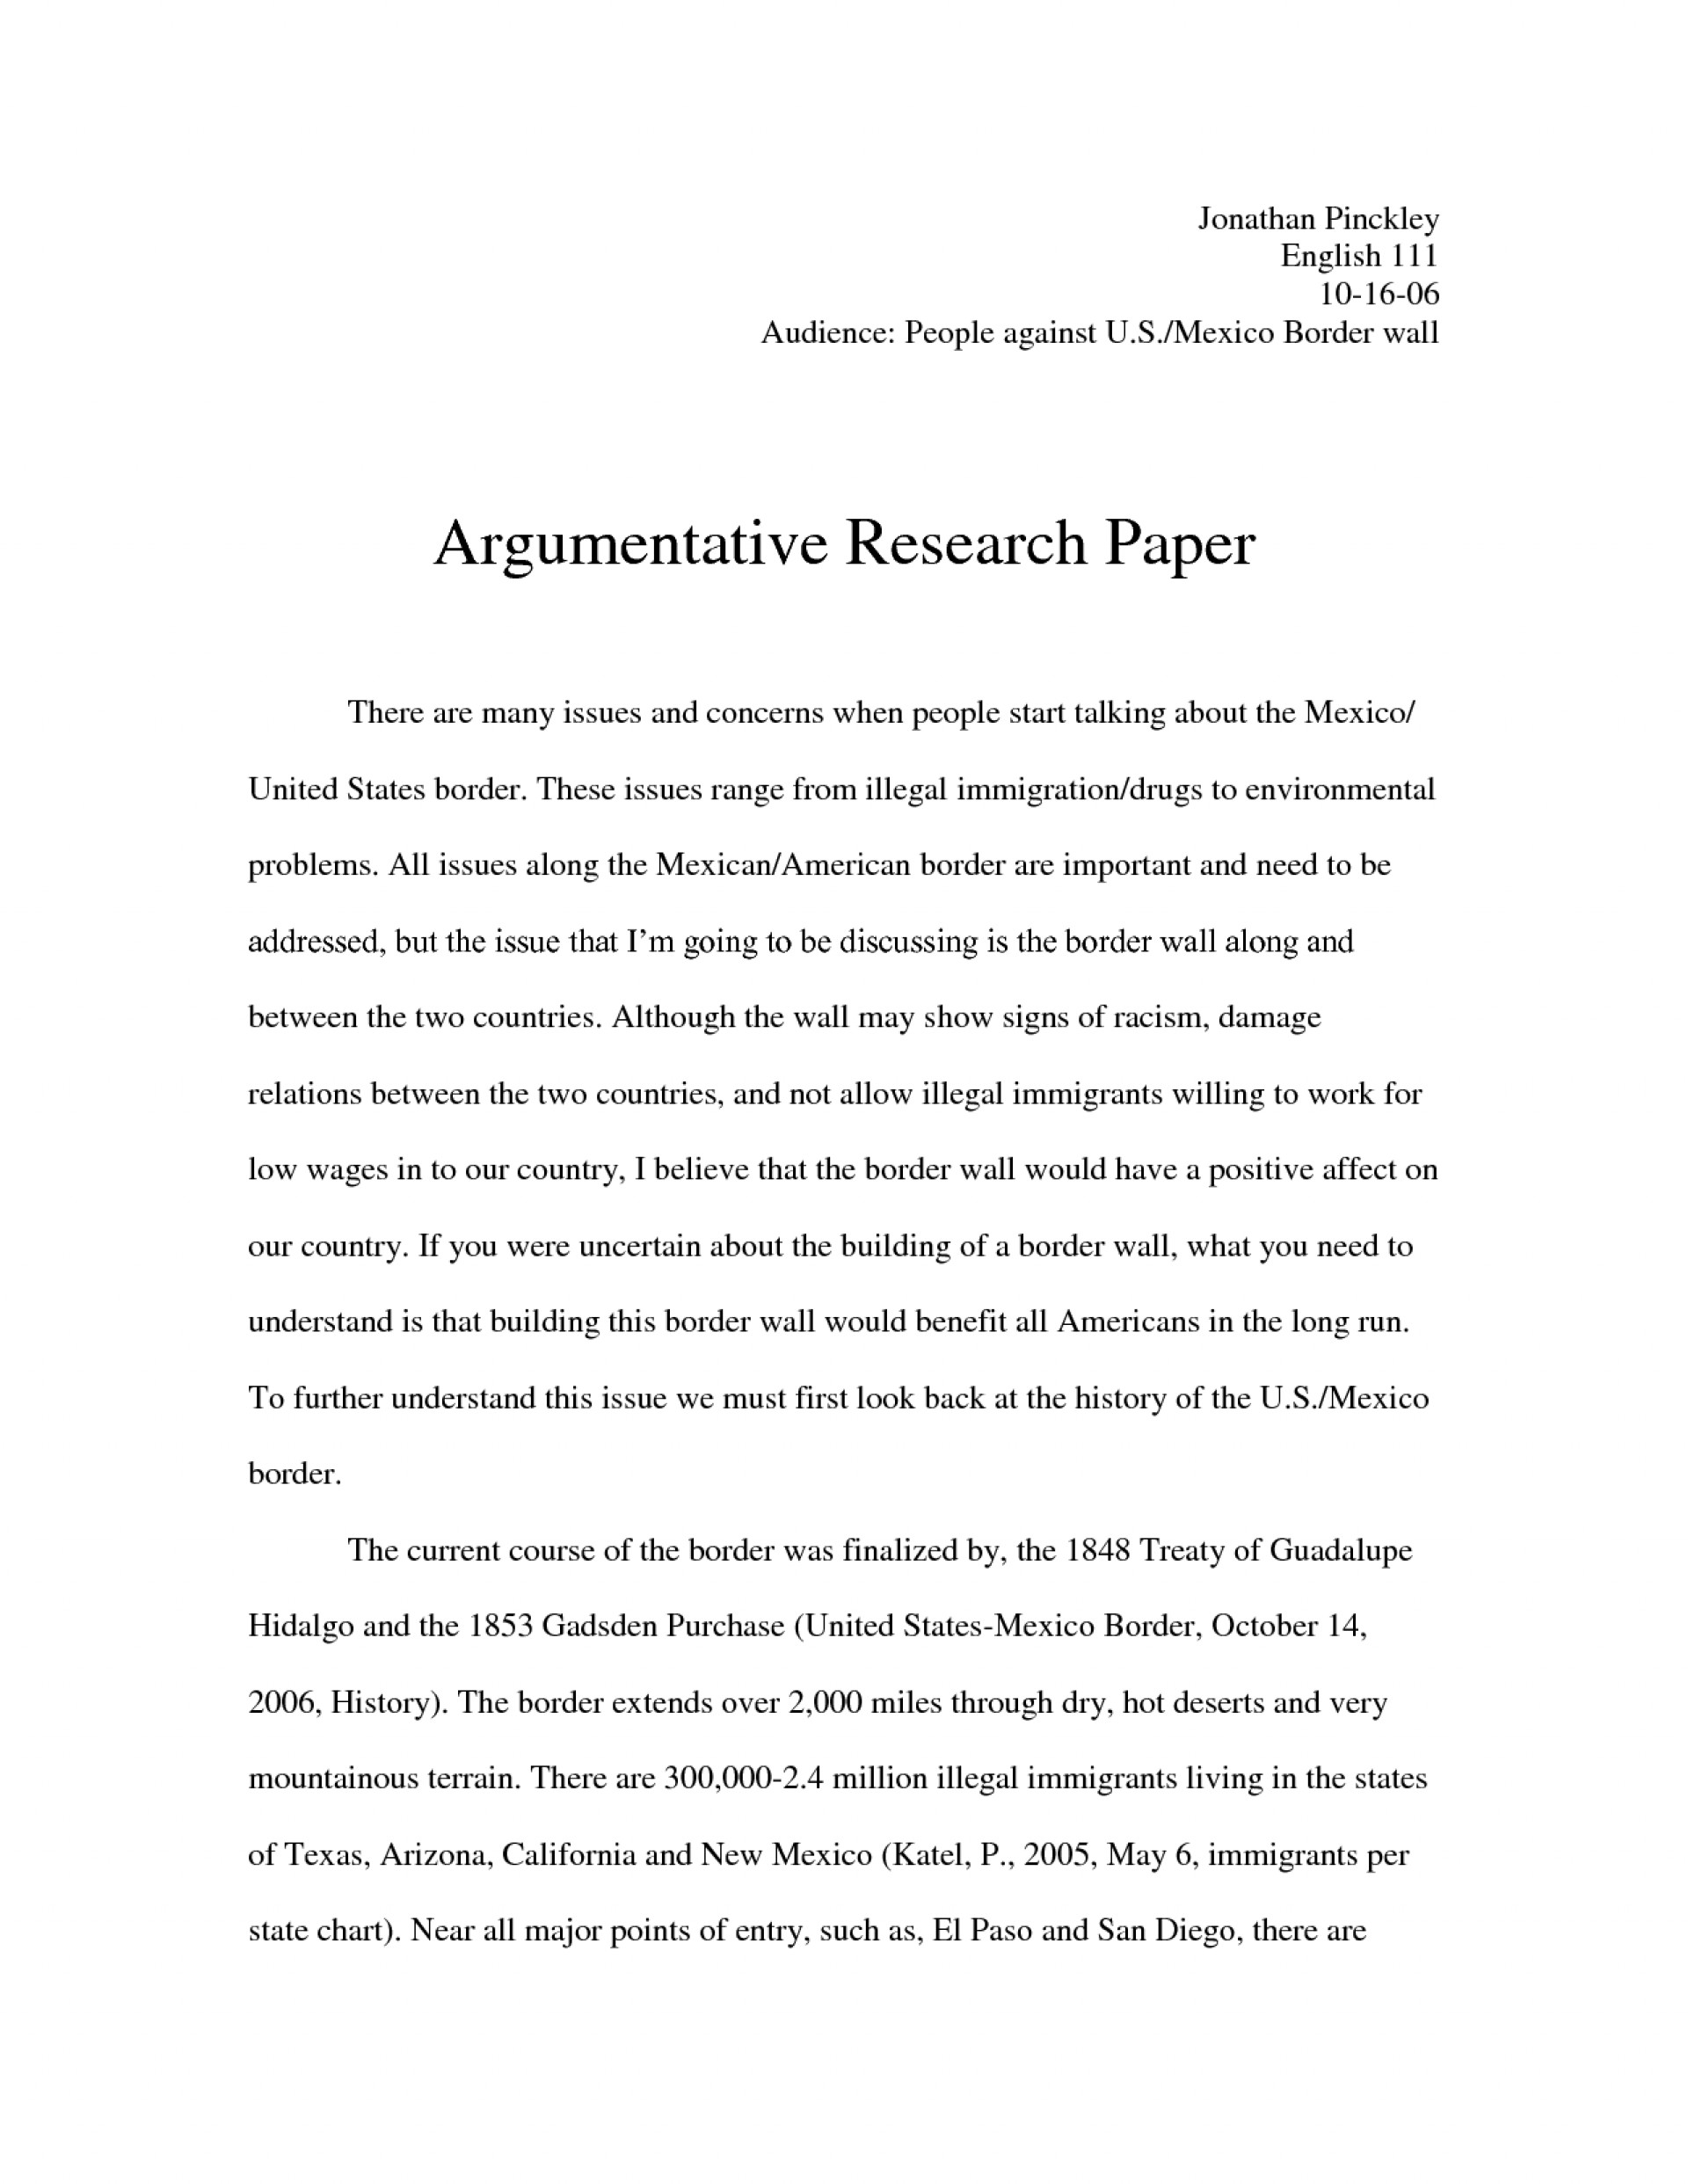 014 Topics For Argumentative Research Paper Uncategorized Debate20y Thesis High School Sentence Starters Outline Worksheet Wonderful Interesting Medical 1920